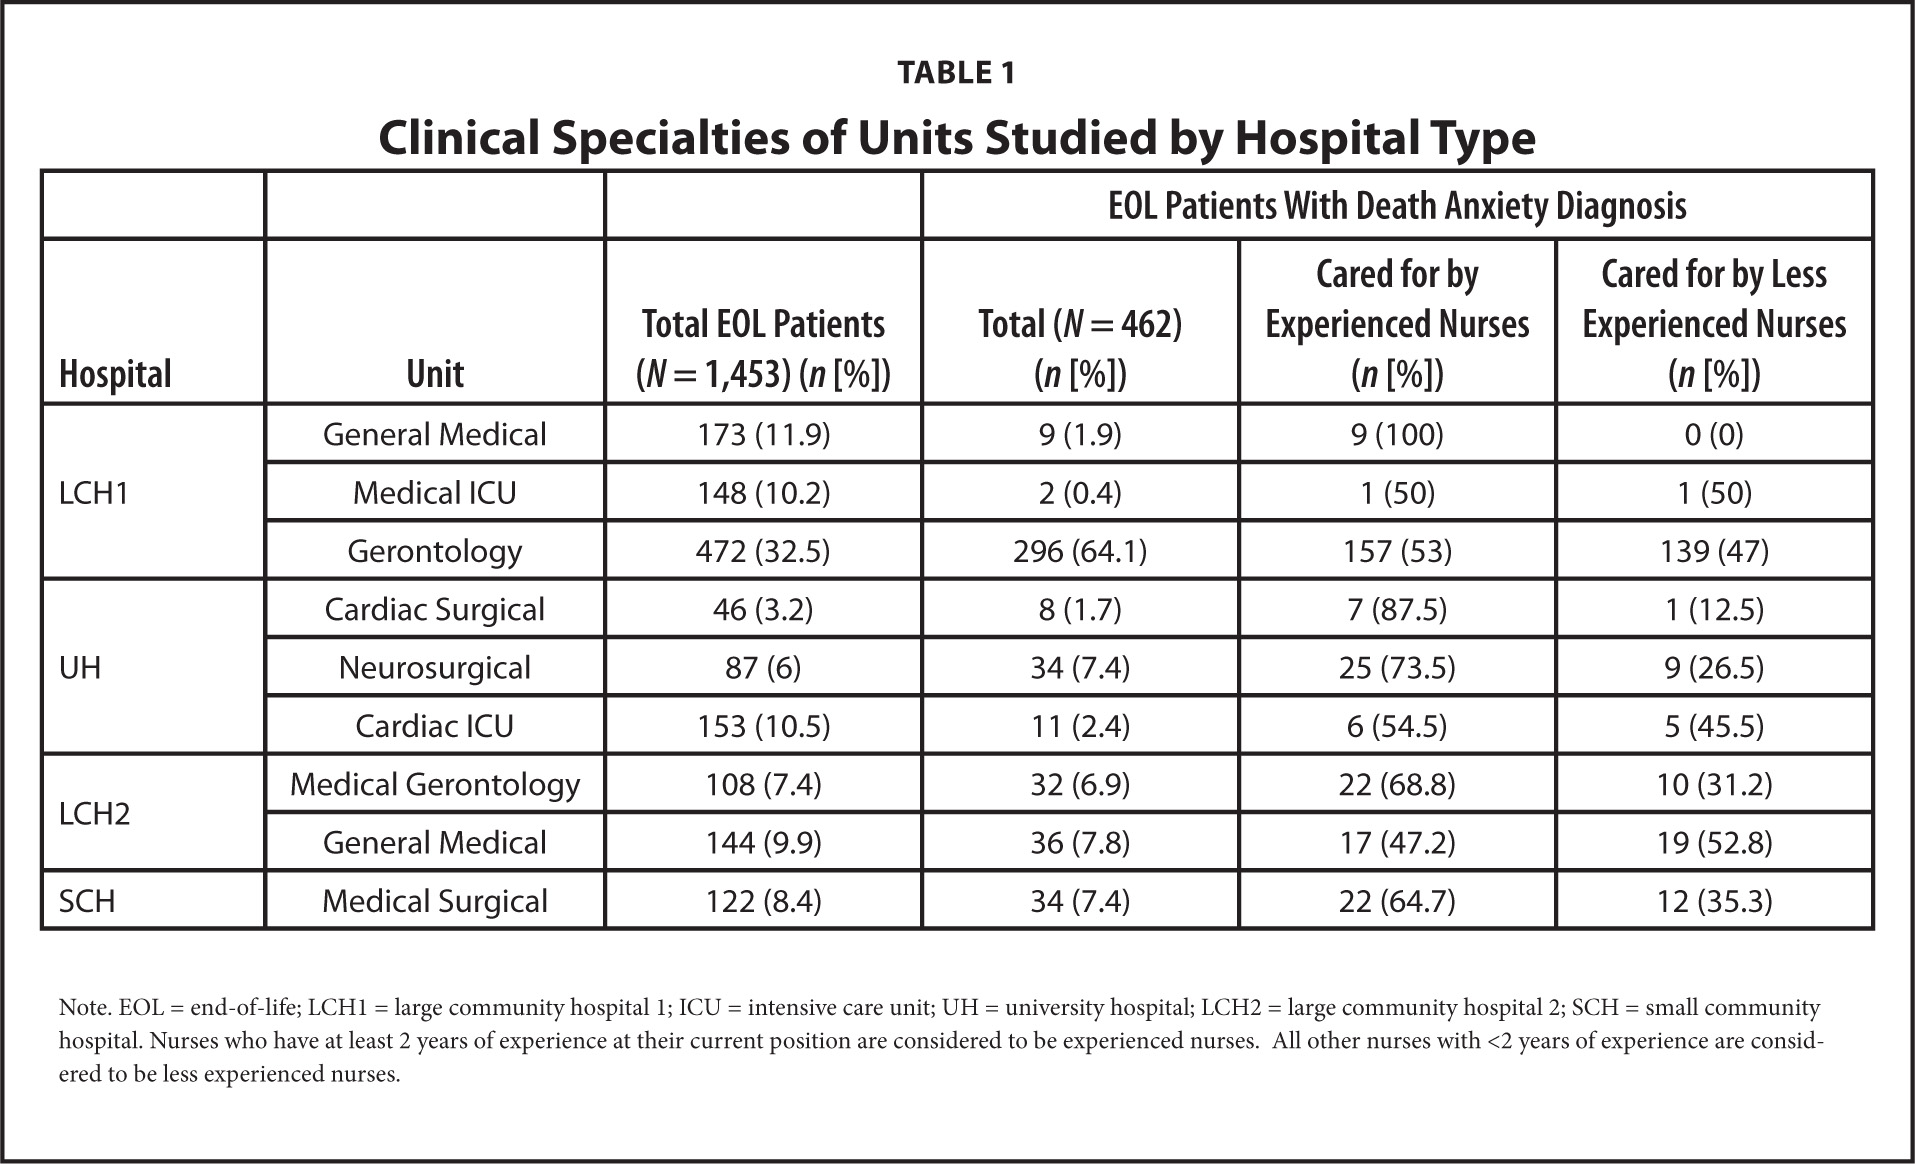 Clinical Specialties of Units Studied by Hospital Type